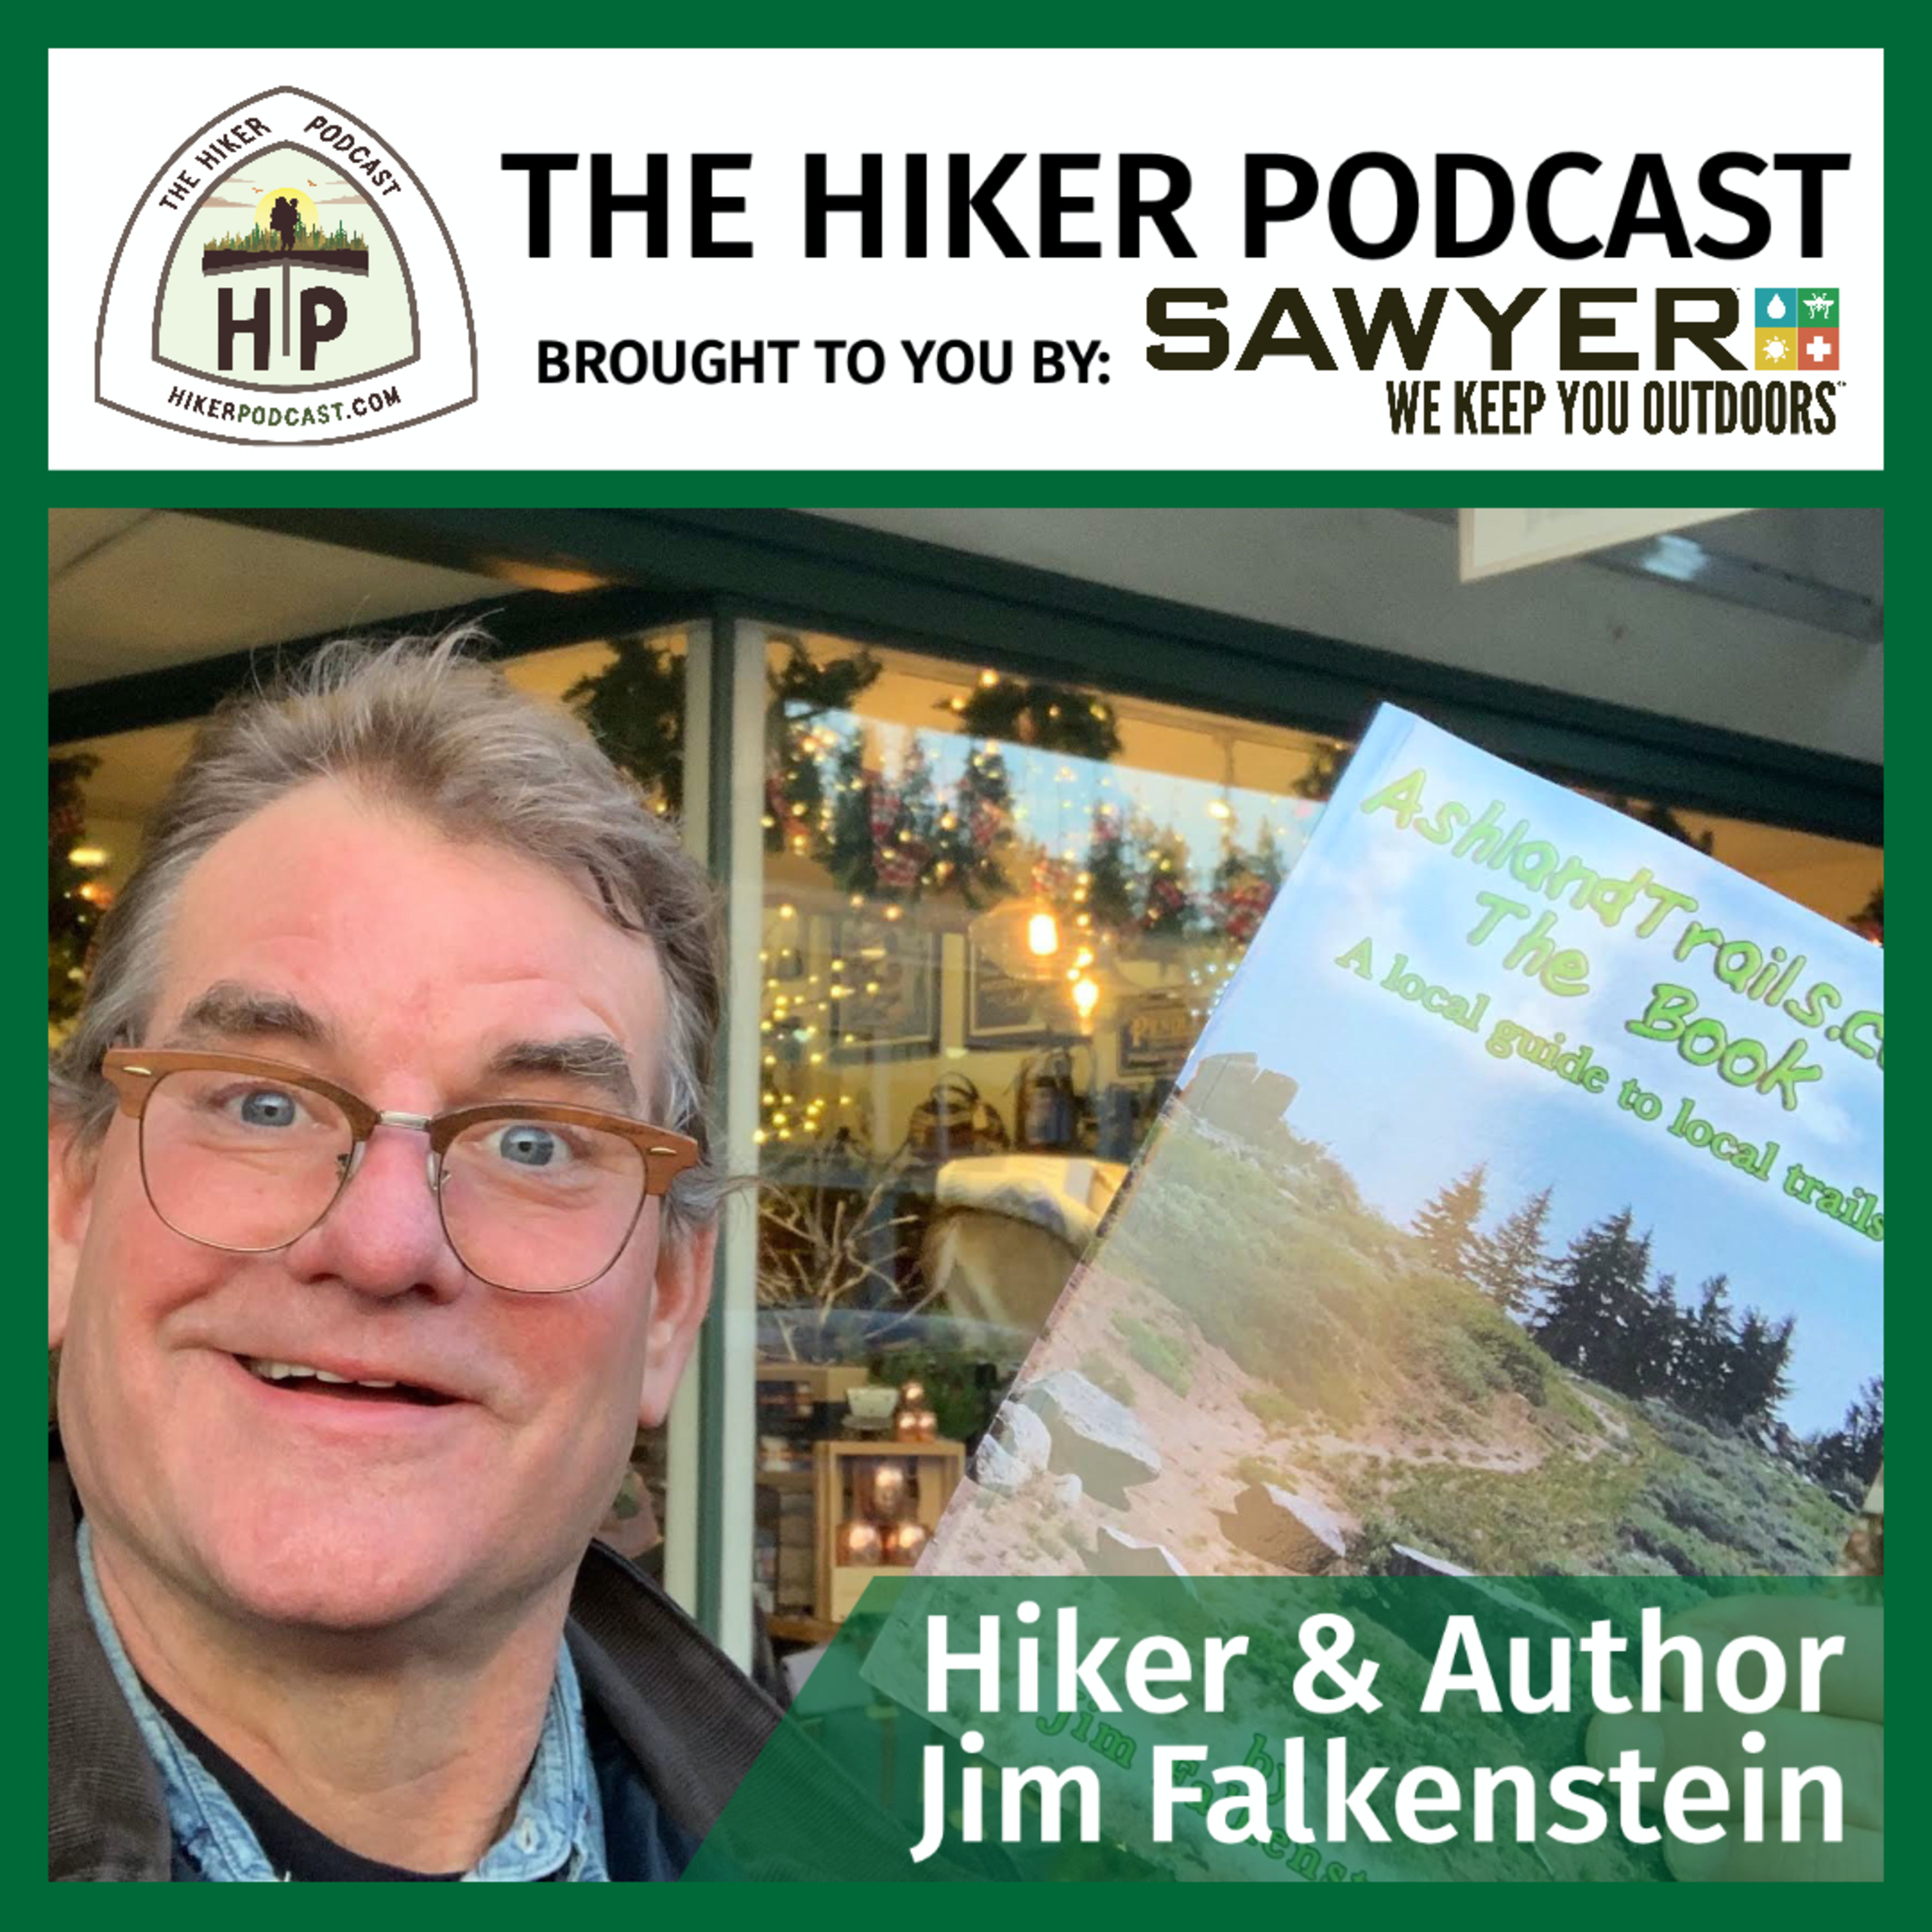 Hiker and Author Jim Falkenstein | The Hiker Podcast Episode 8